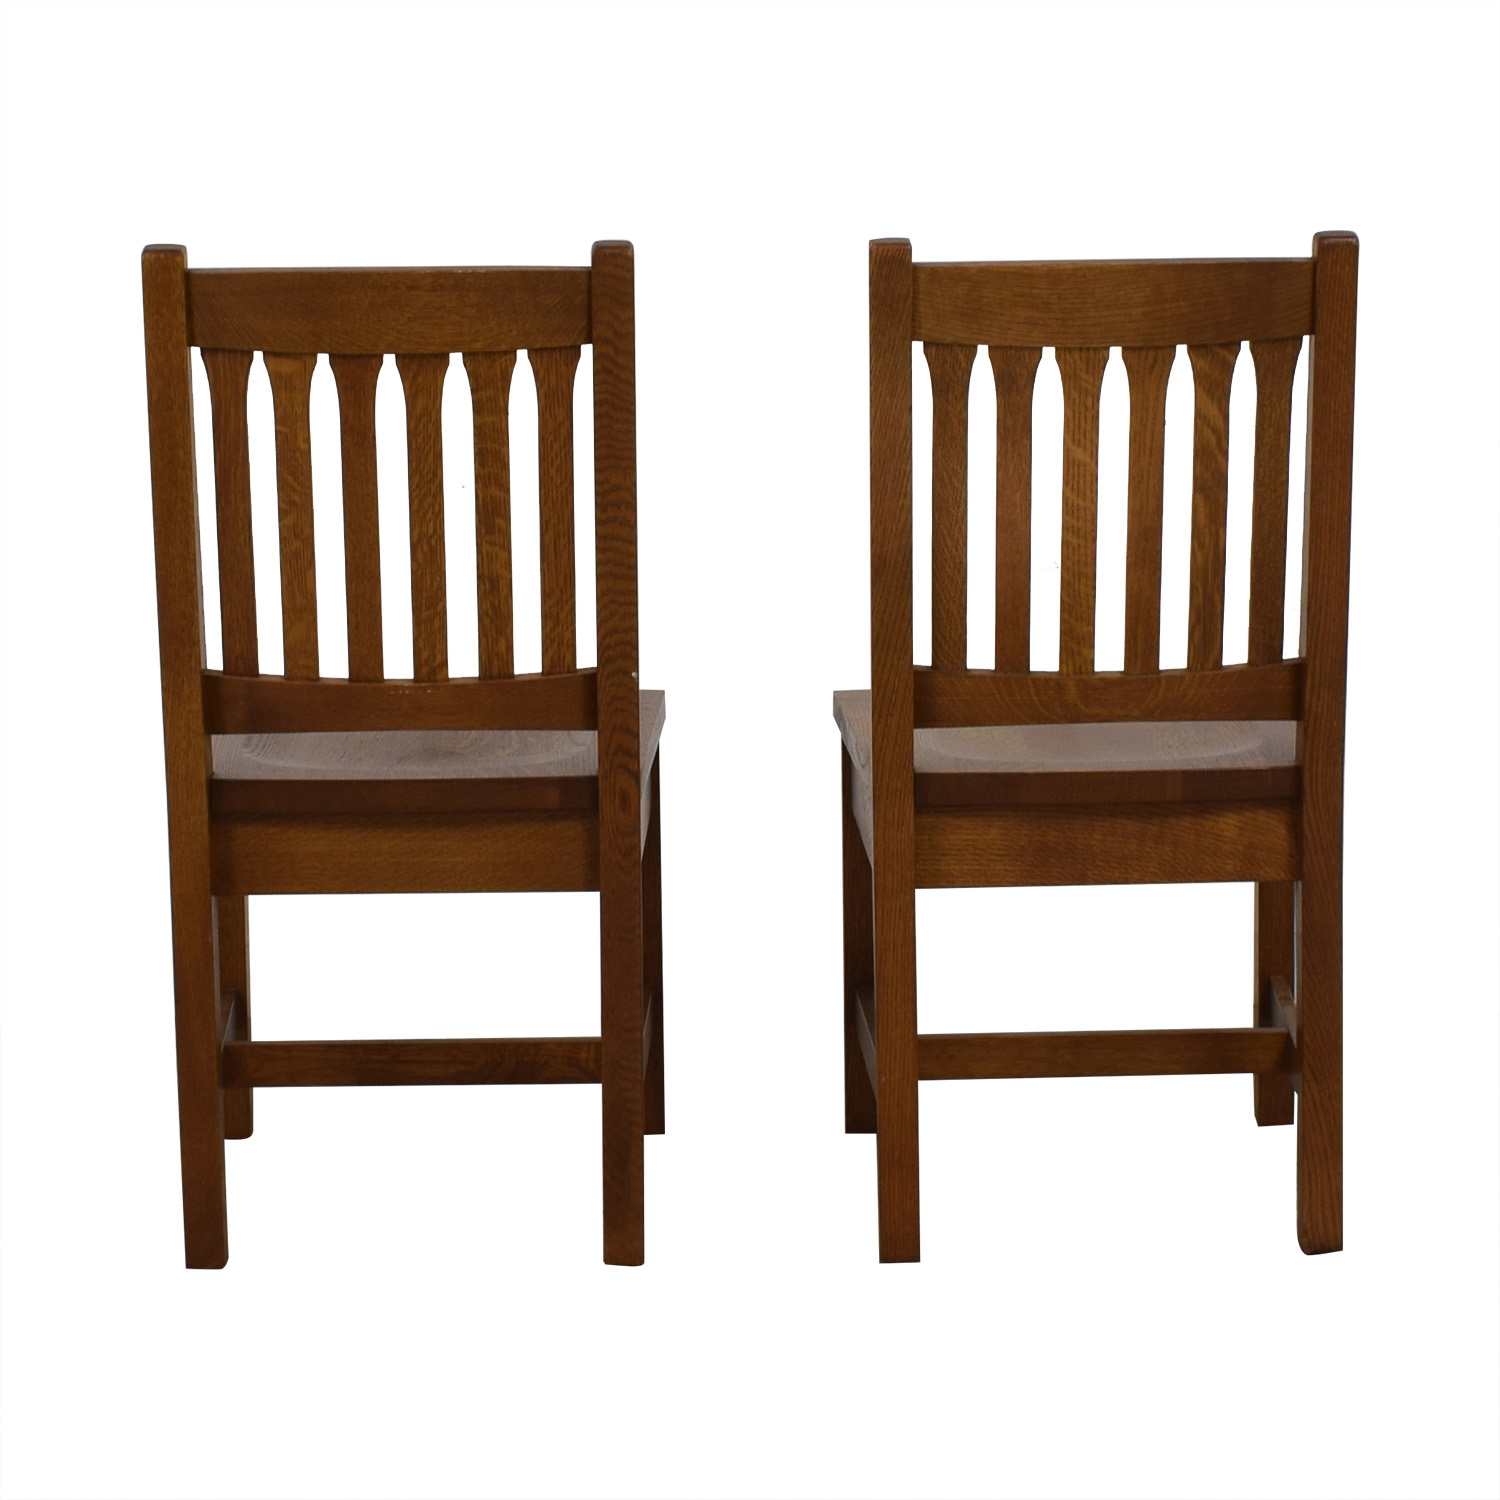 Stickley Audi & Co Handcrafted Wooden Chairs Stickley Audi & Co